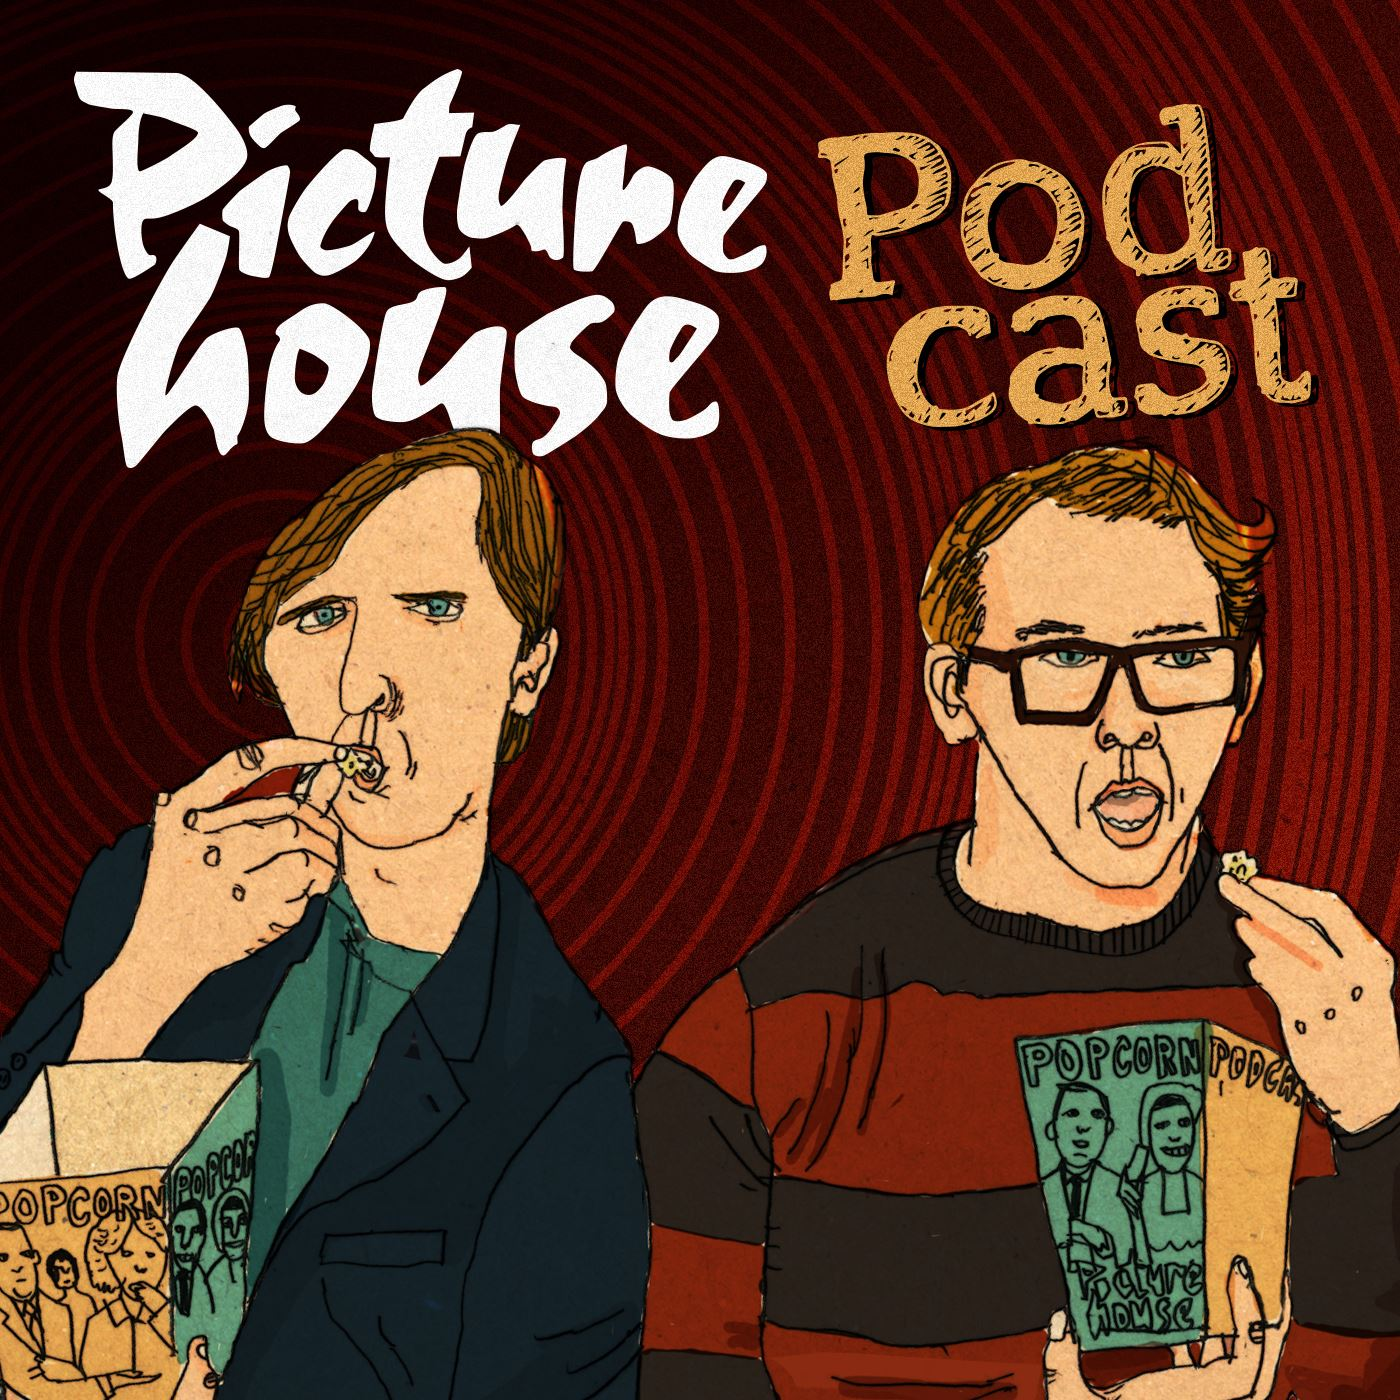 Picturehouse Podcast